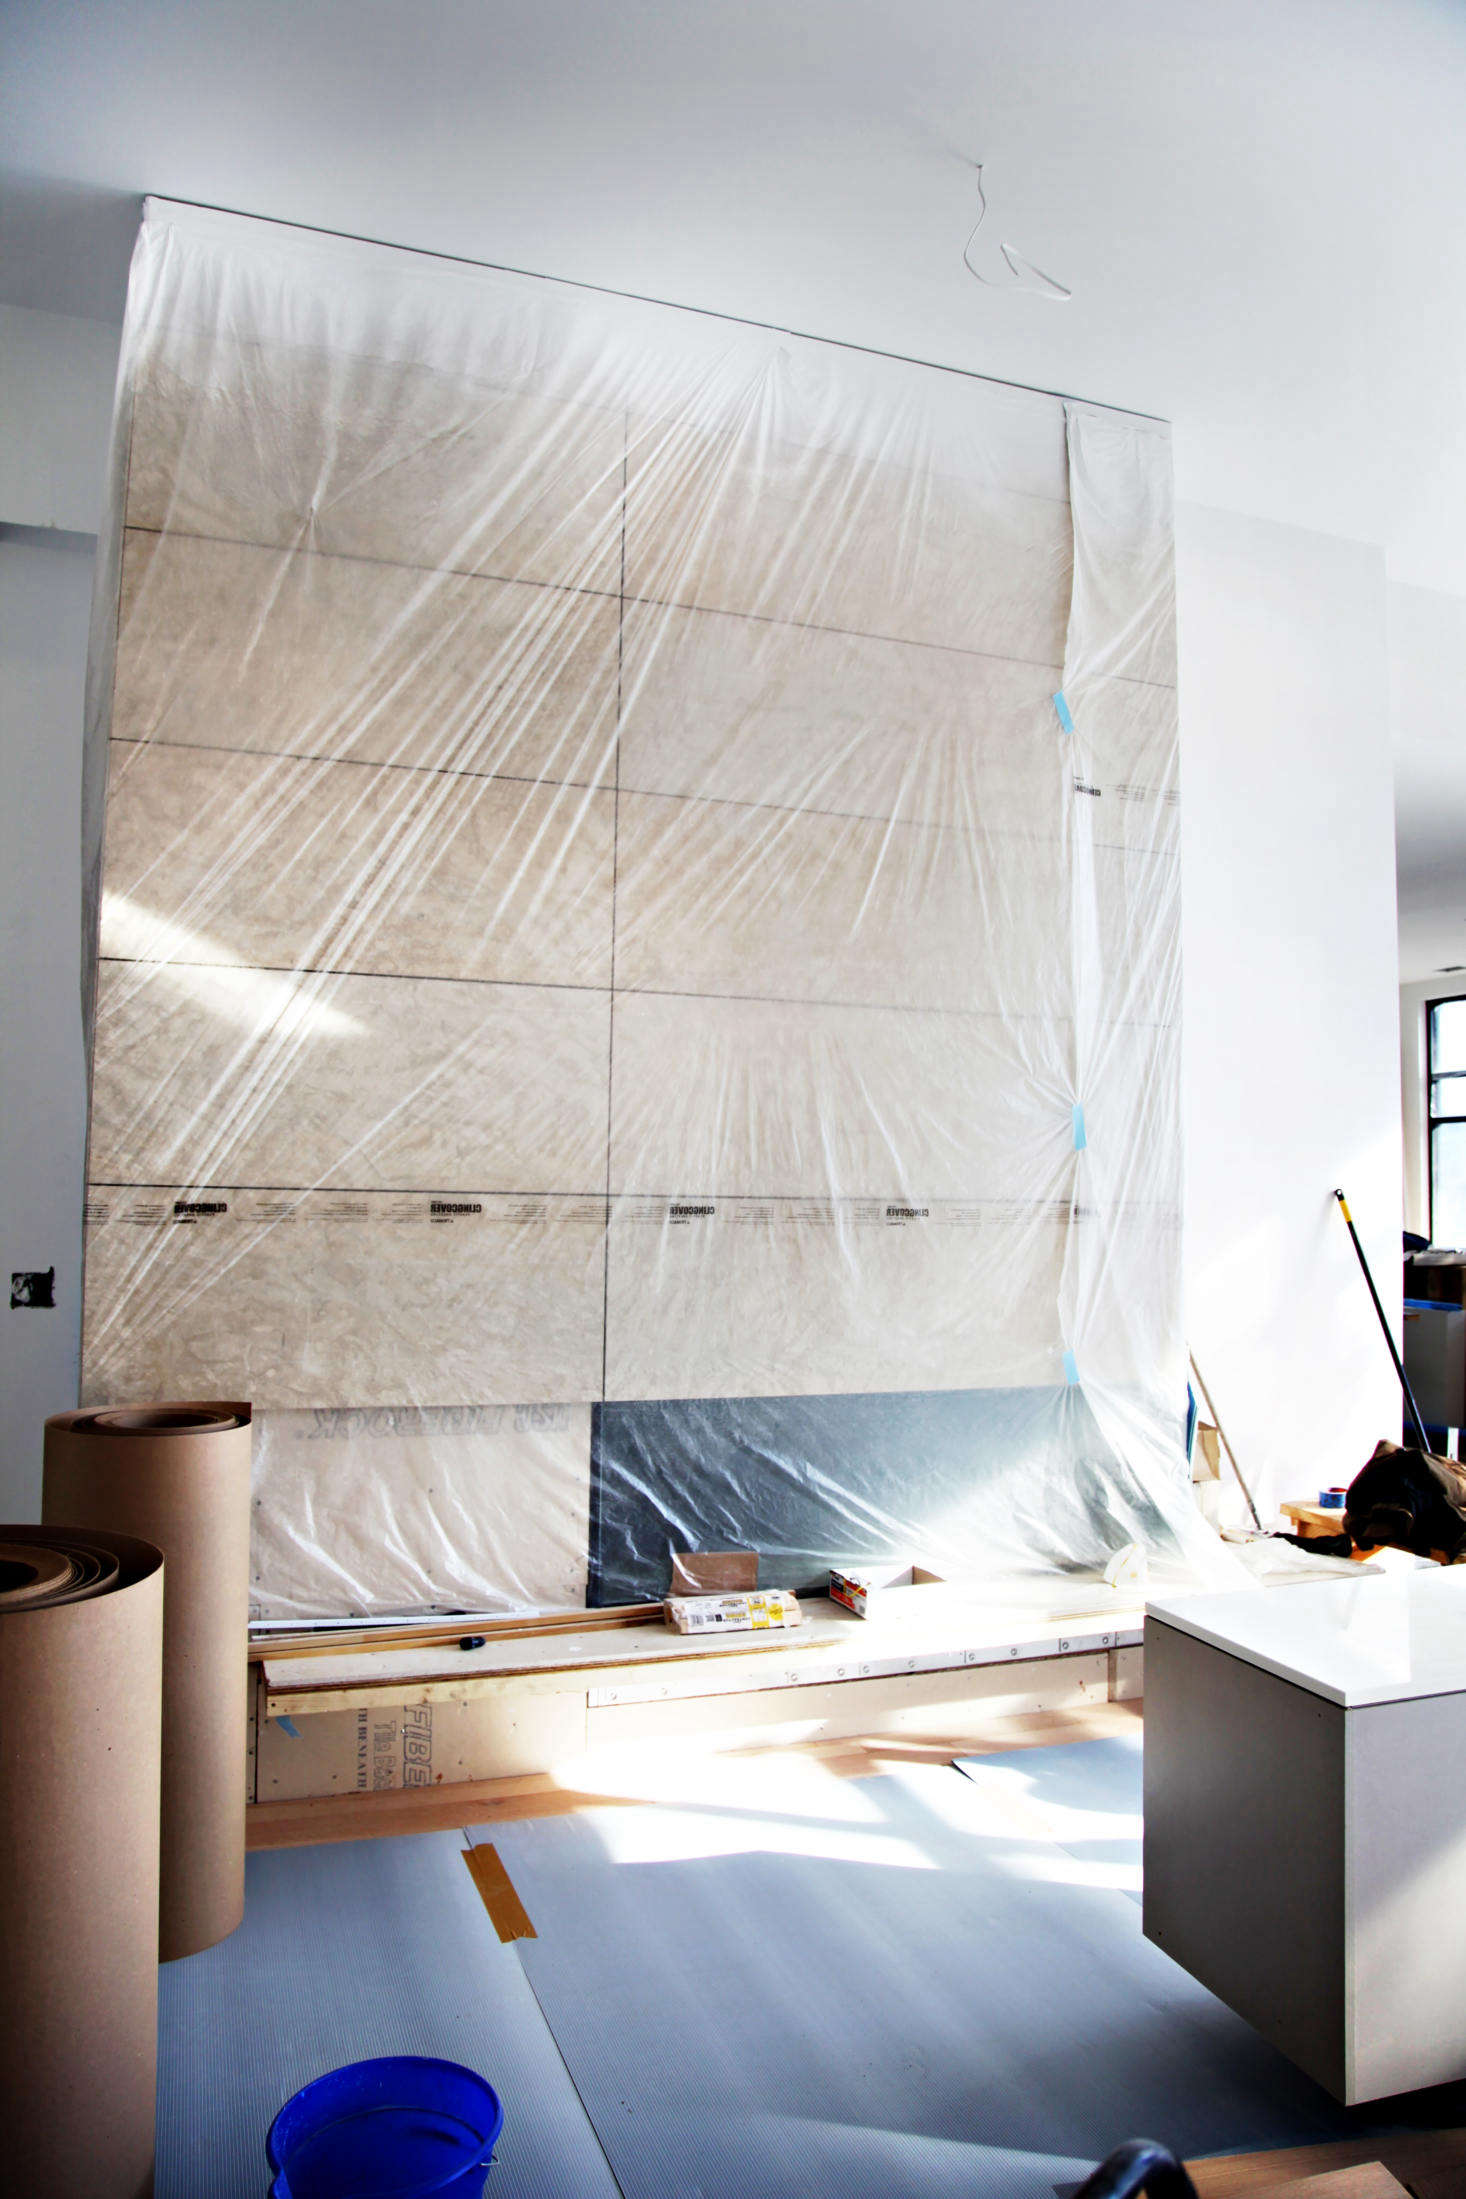 """For painting projects, Trimaco makes """"Cling Cover"""" plastic sheeting that self-adheres and clings to almost any surface. The film is treated with a formula that attracts paint overspray and can withstand multiple uses."""